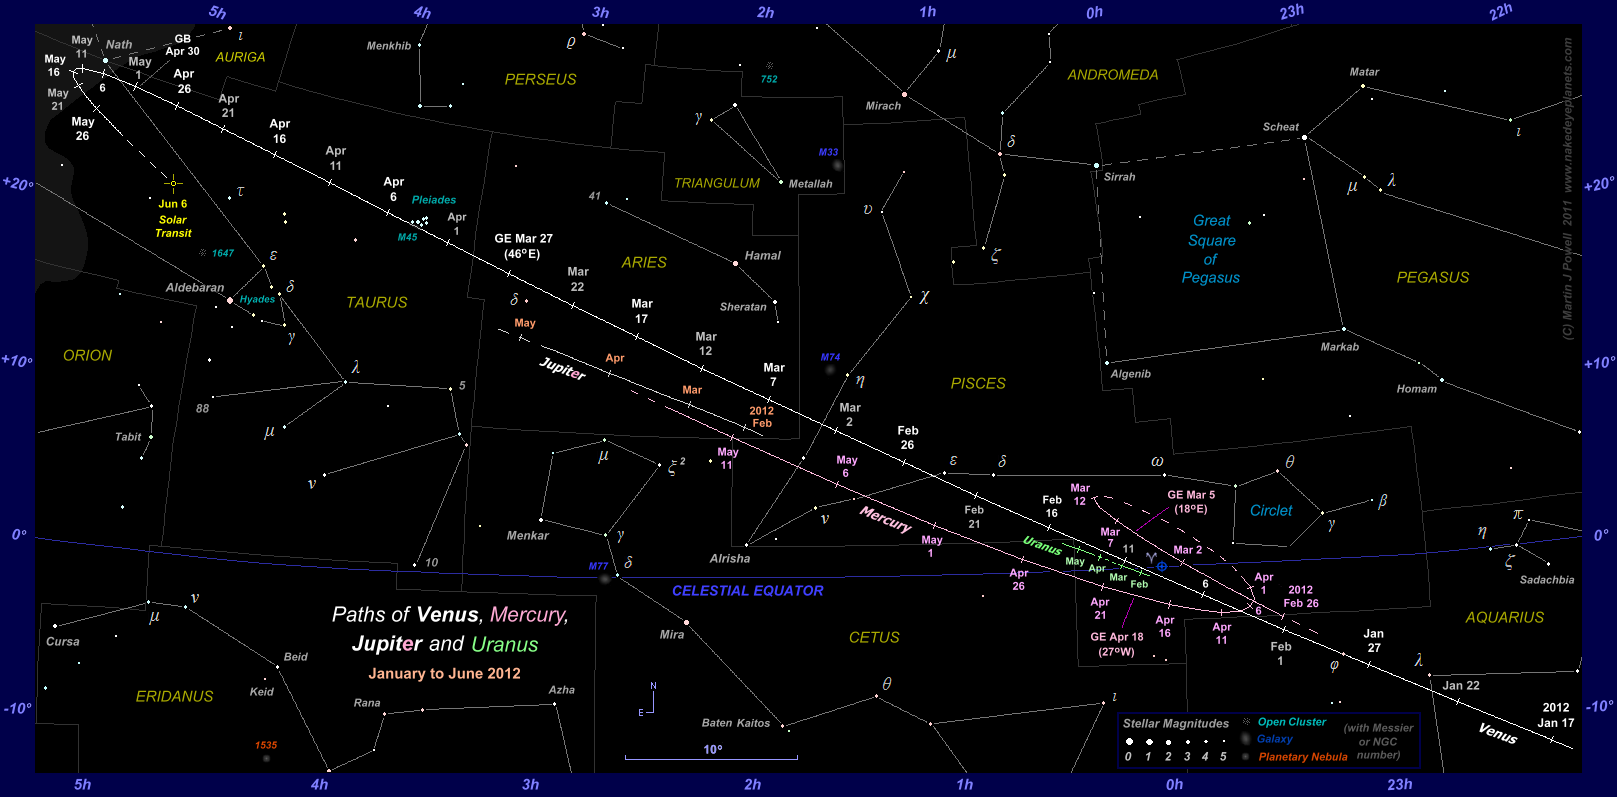 Star chart showing the paths of Venus, Mercury, Jupiter and Uranus through Aquarius, Pisces, Aries and Taurus from mid-January to early June 2012 (Copyright Martin J Powell 2011)